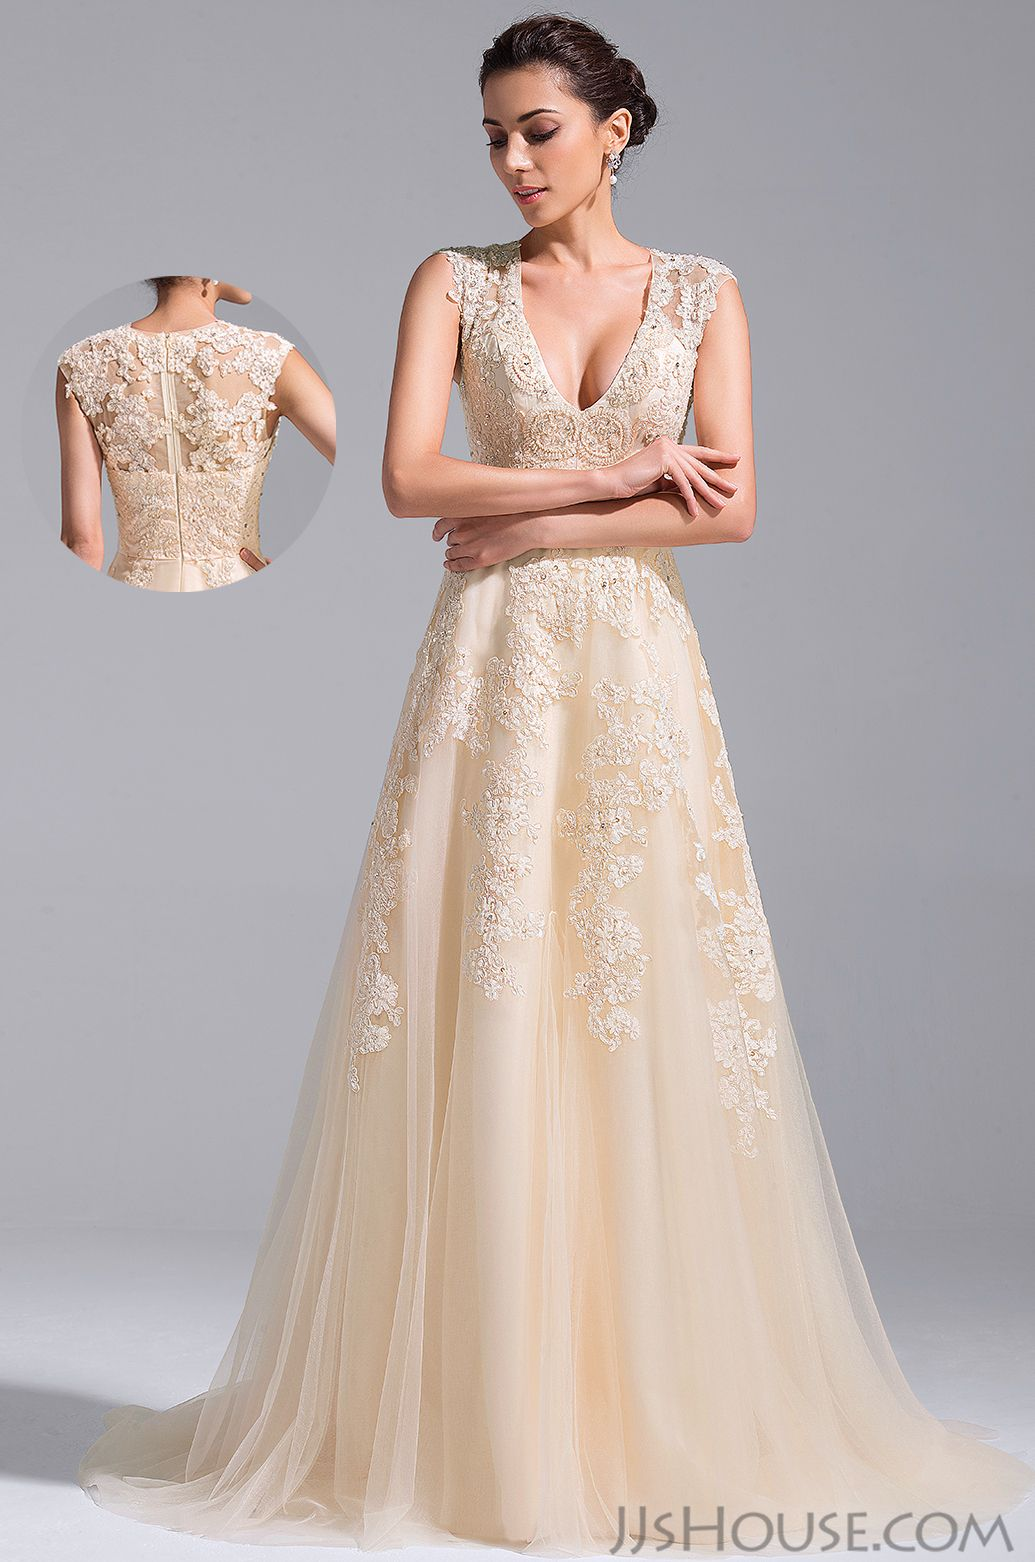 Lace v neck wedding dress  The Vneck wedding dress will be perfect for your big day JJsHouse